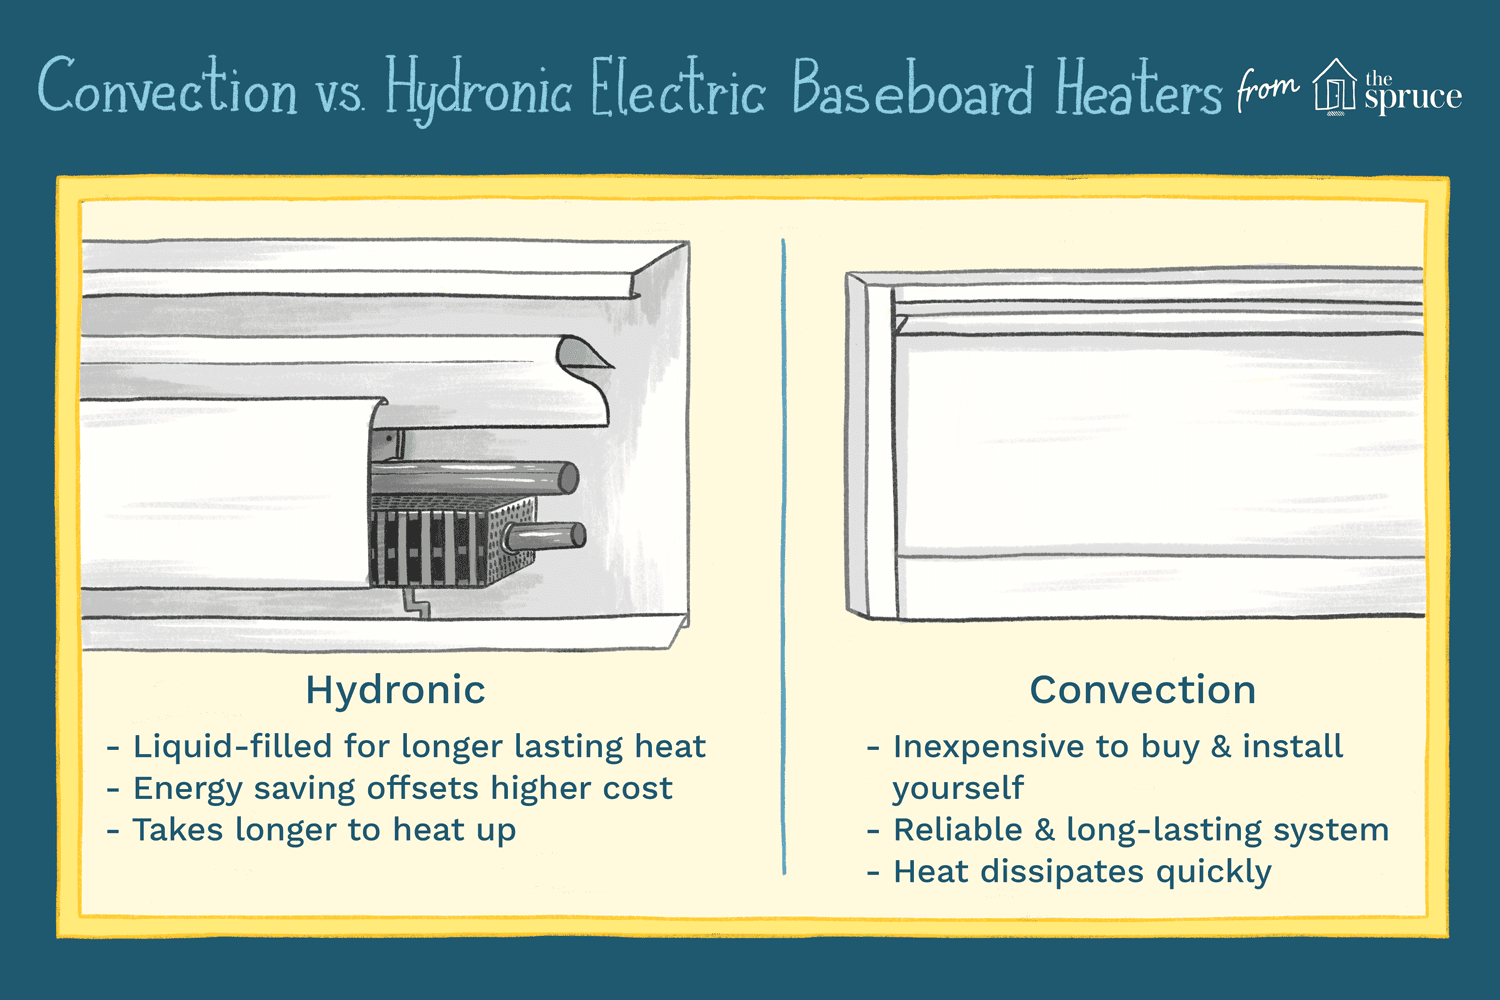 hight resolution of convection vs hydronic electric baseboard heaters illustration